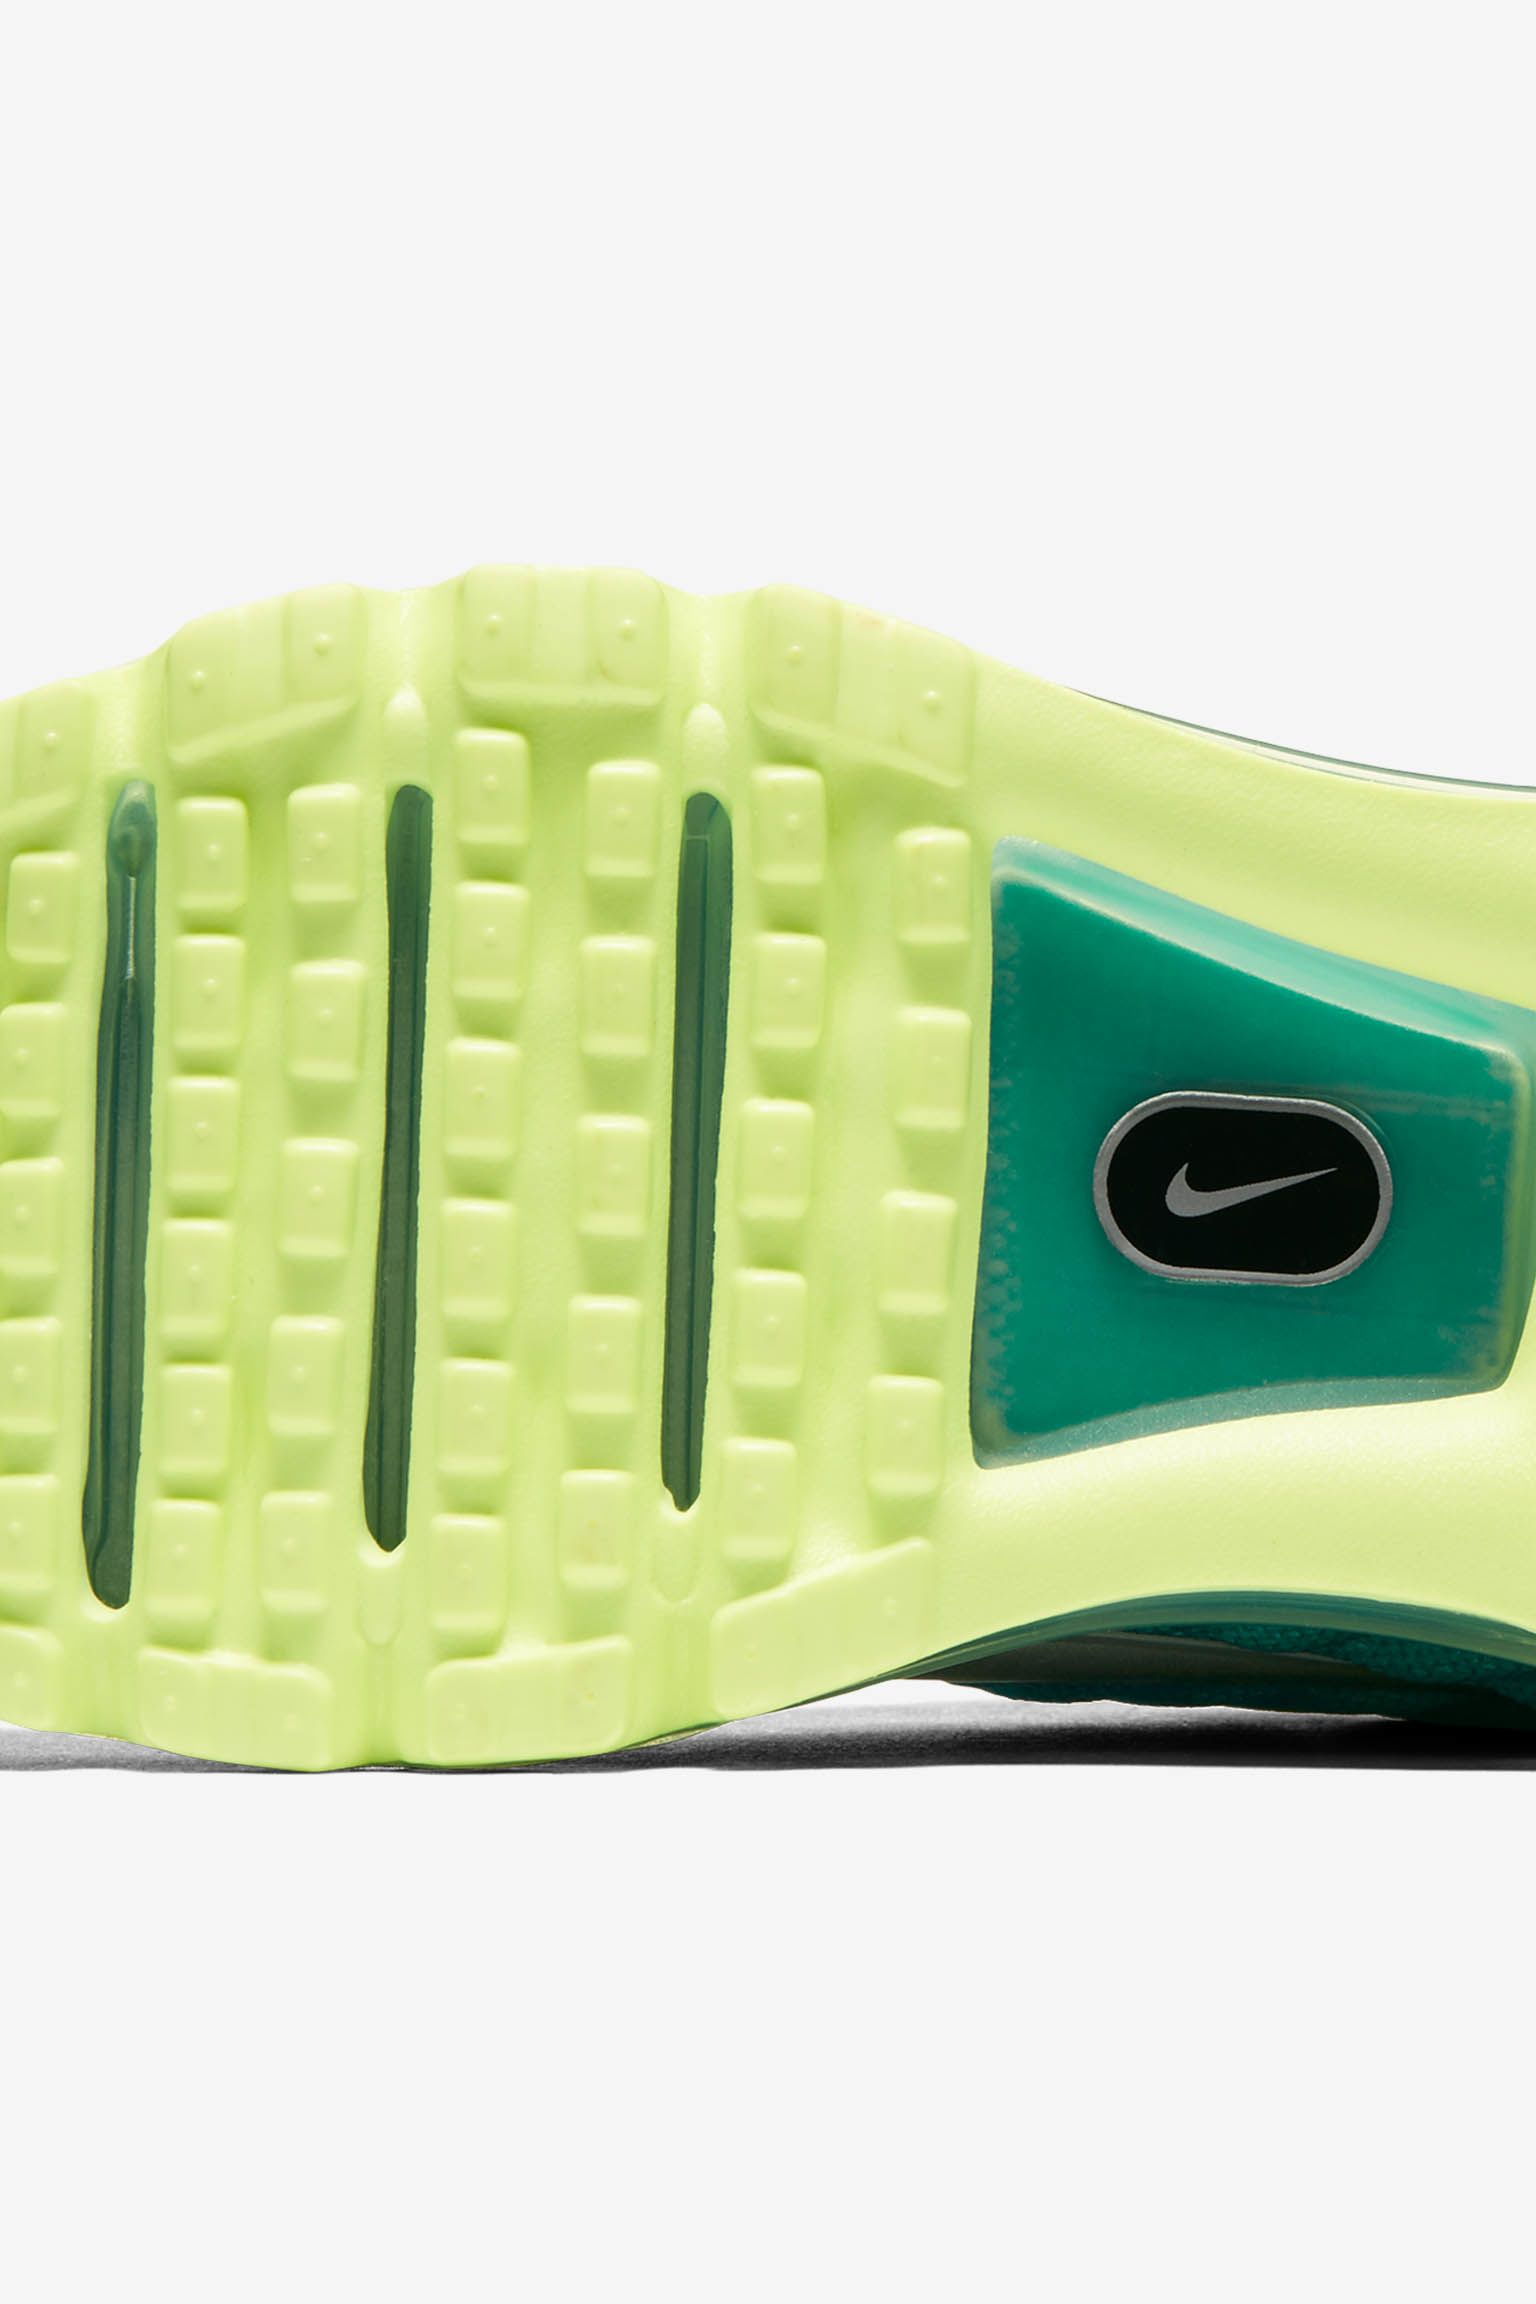 Women's Nike Air Max 2017 'Rio Teal'. Release date